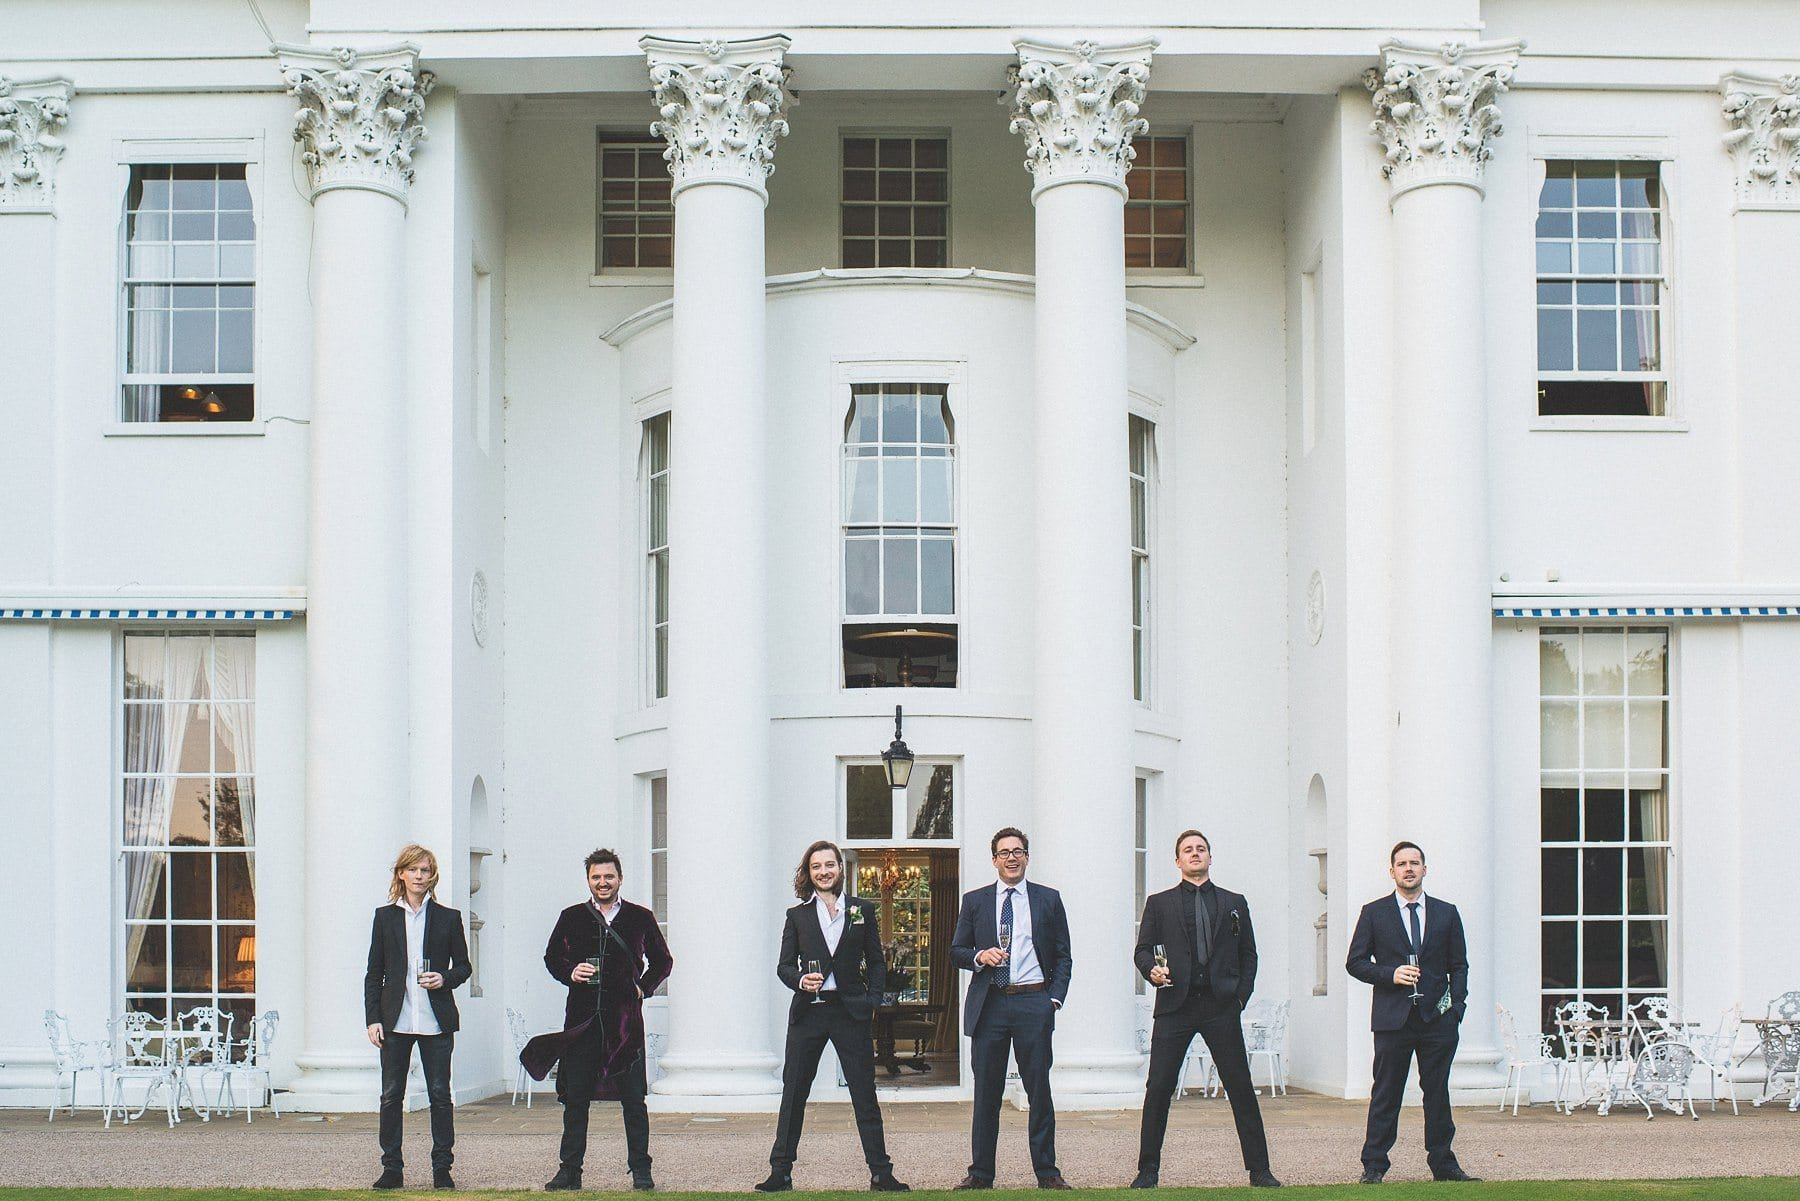 Groom and groomsmen standing in front of the white marble columns at the Hurlingham Club wedding